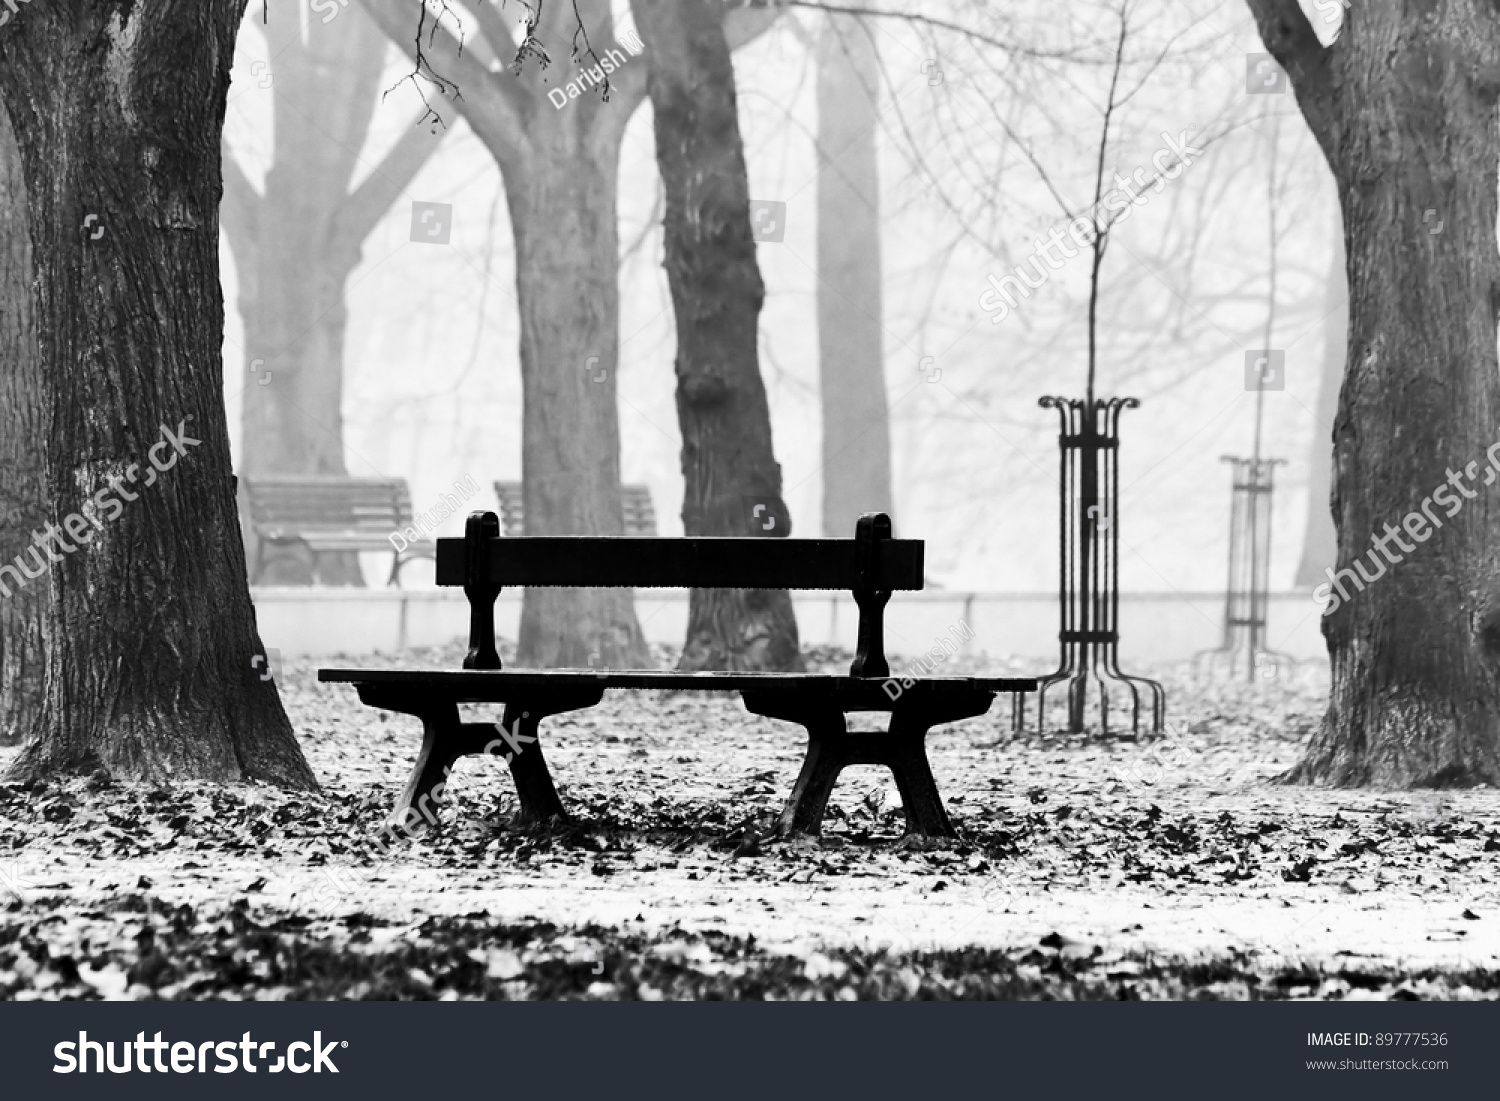 Bench In The Autumnal Park Black And White Stock Photo 89777536 Shutterstock